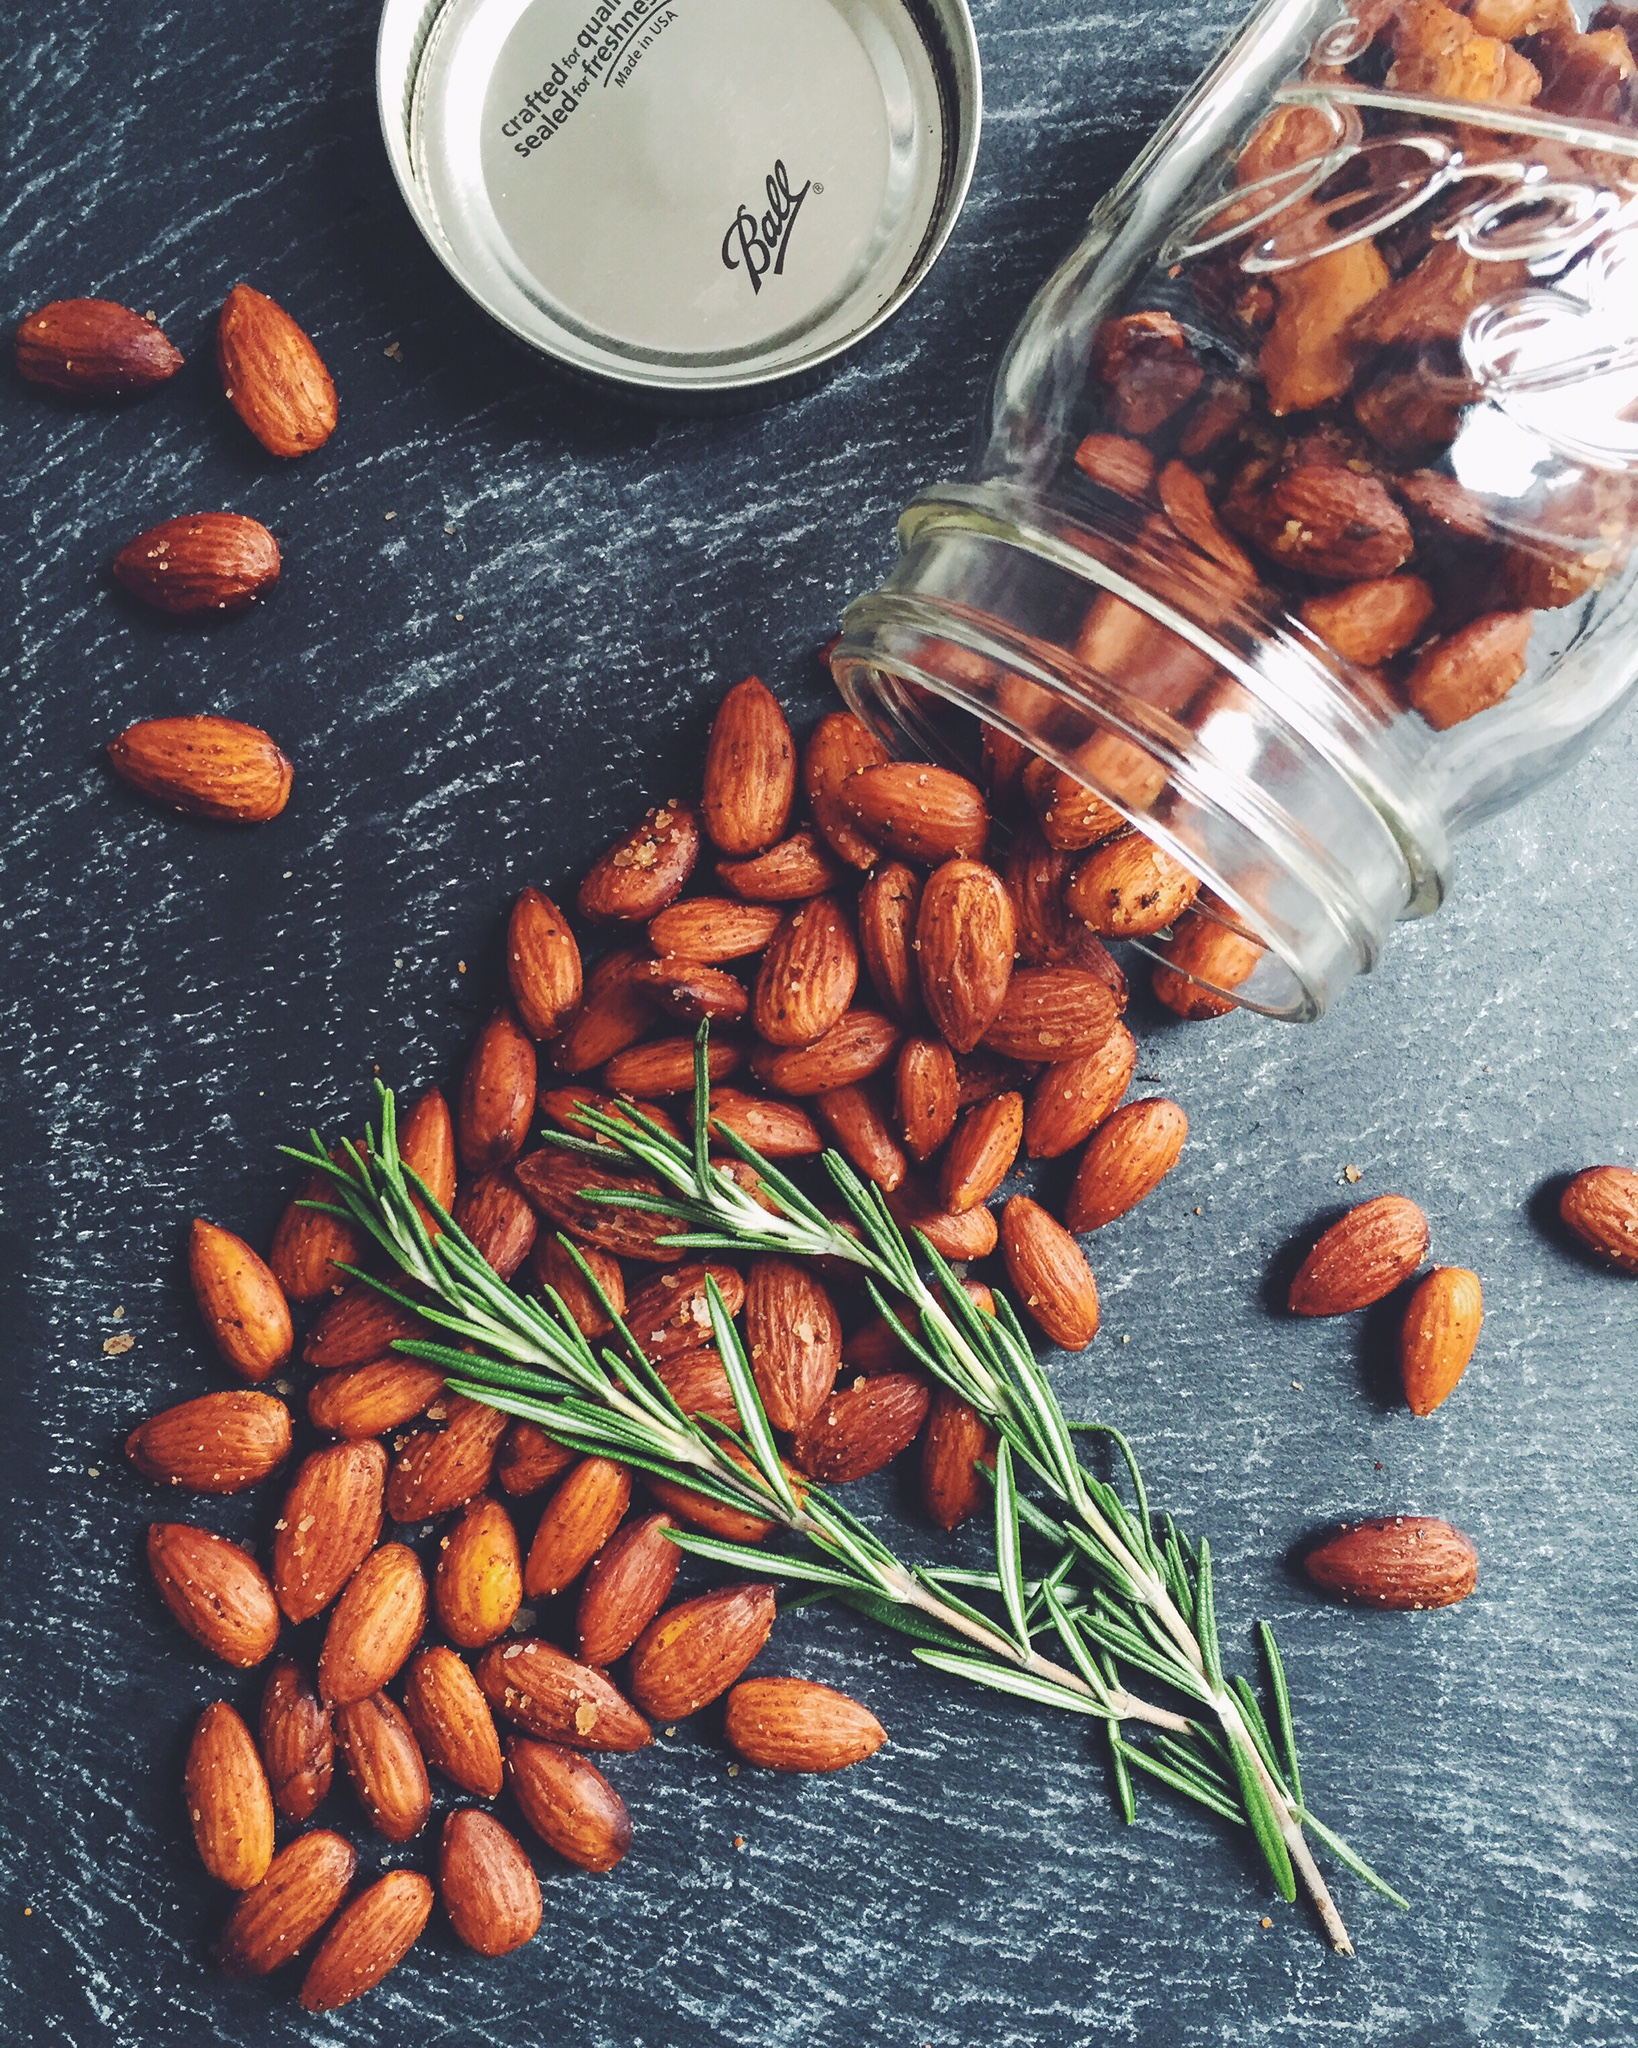 Roasted Rosemary and Cayenne Spiced Almonds